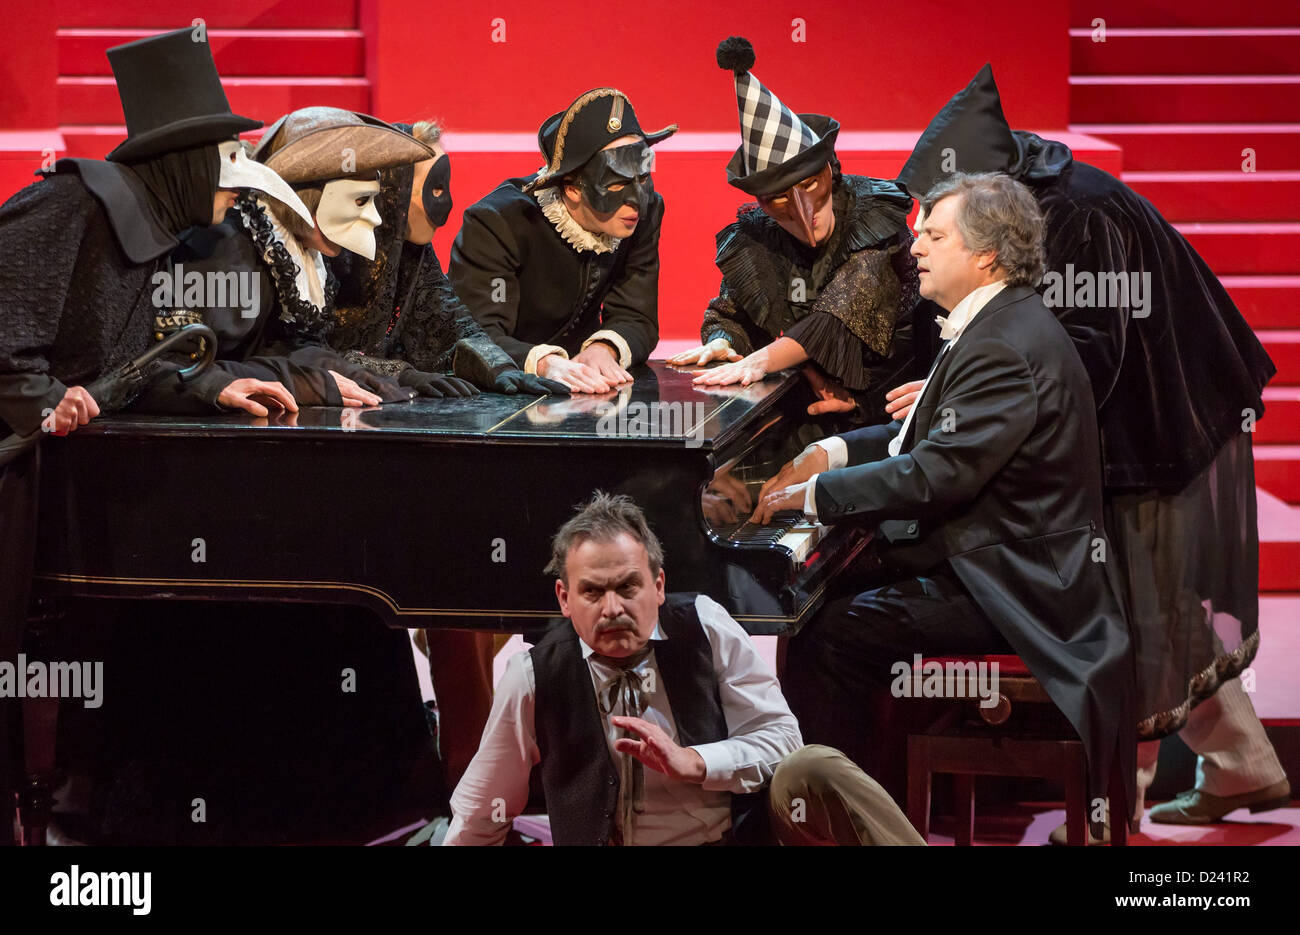 Actors rehearse the play 'Wahnfried - Bilder einer Ehe' ('Wahnfried - pictures of a marriage') at - Stock Image